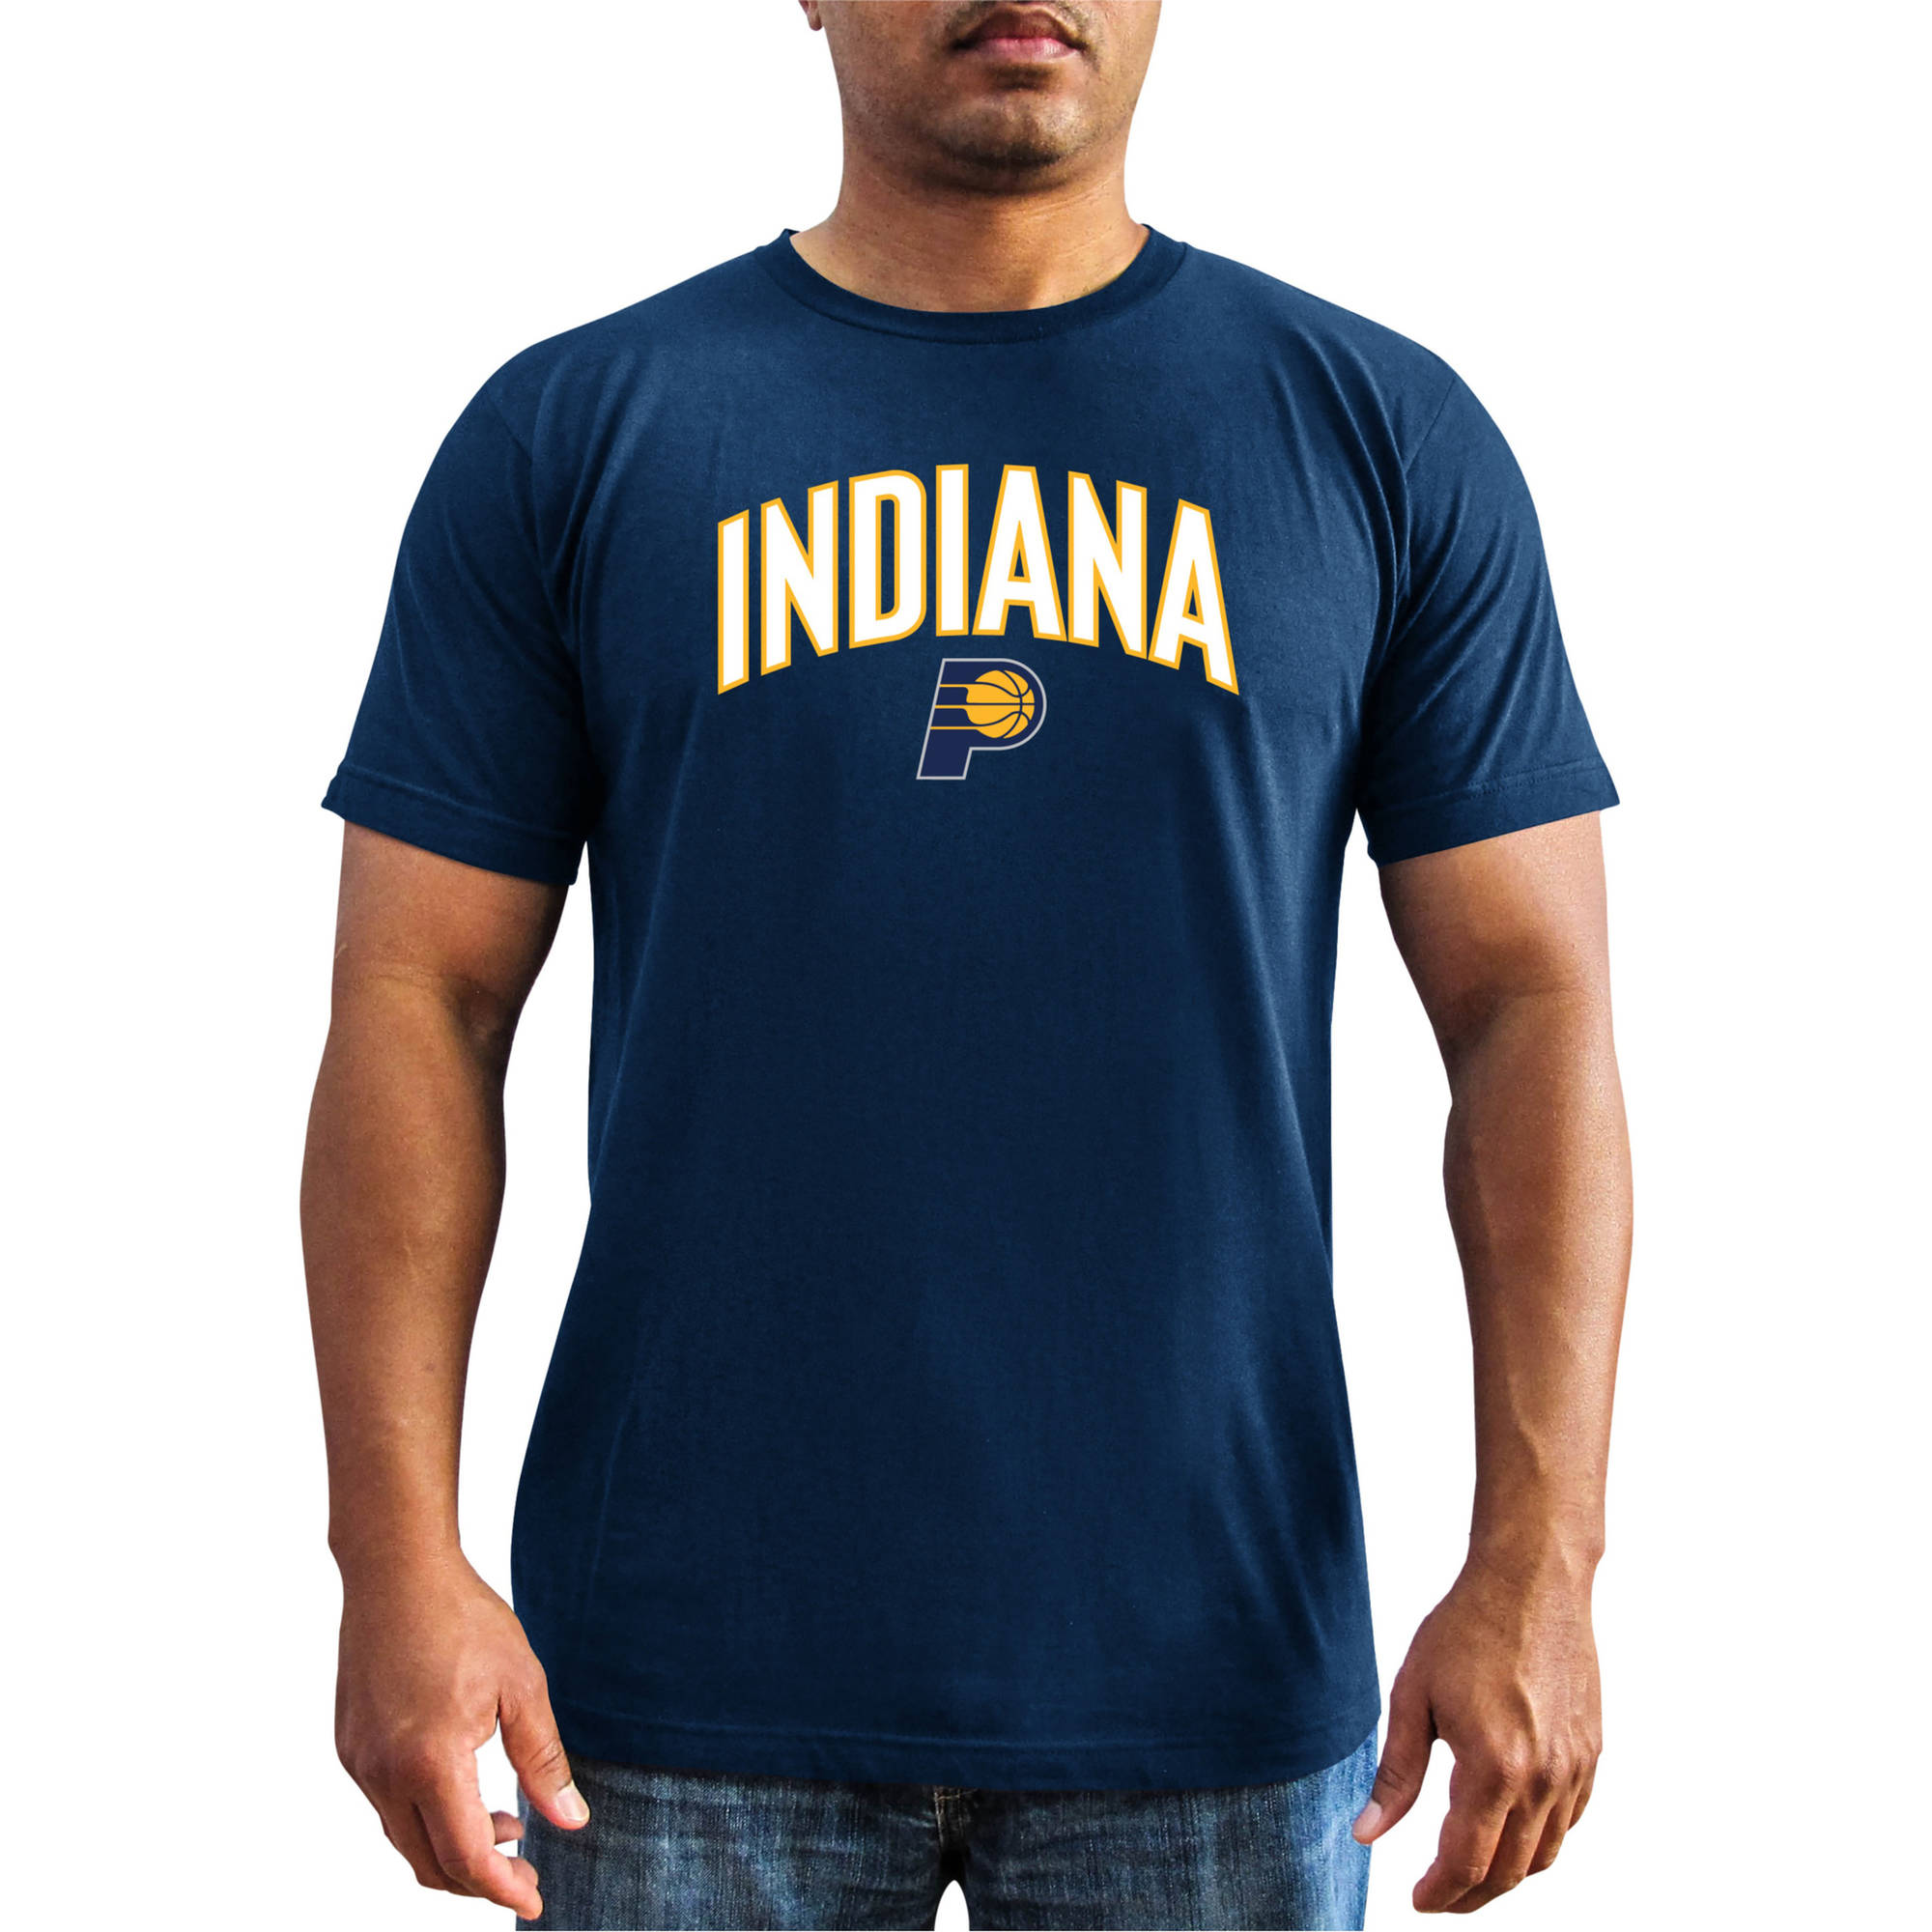 NBA Indiana Pacers Big Men's Short Sleeve Basic Tee